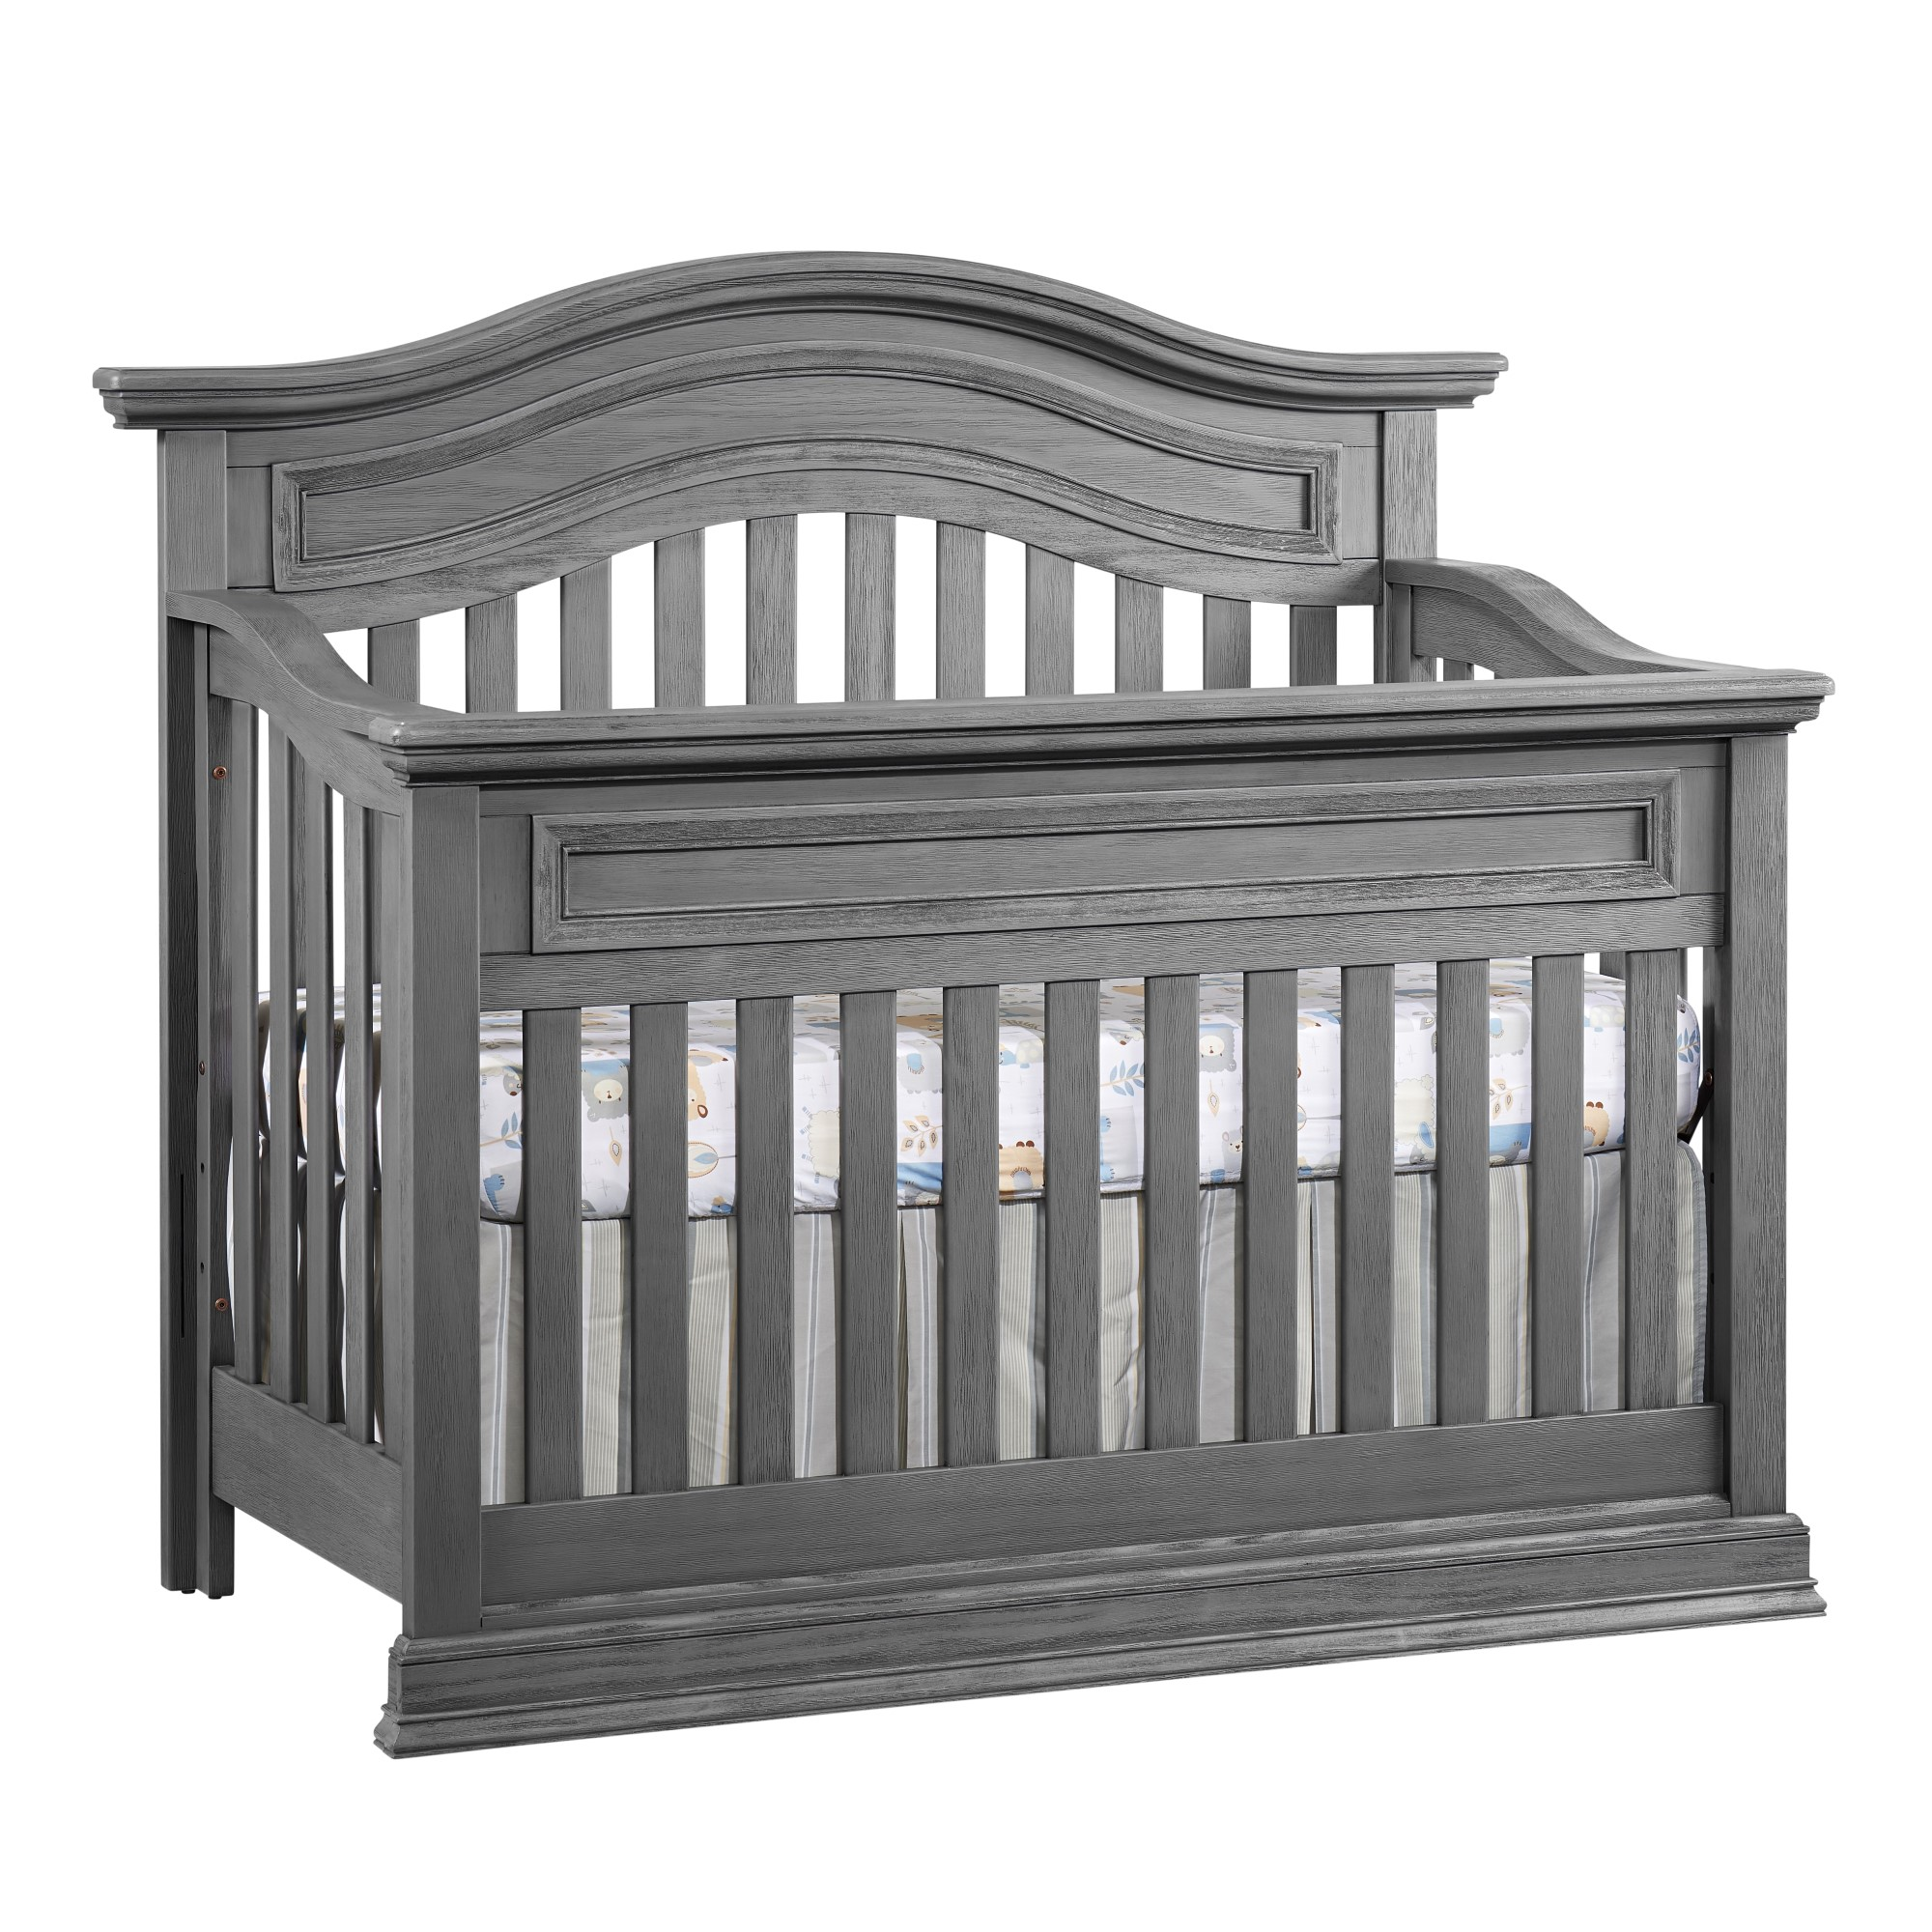 4 in 1 convertible crib piermont rustic stonington gray oxford baby kids. Black Bedroom Furniture Sets. Home Design Ideas